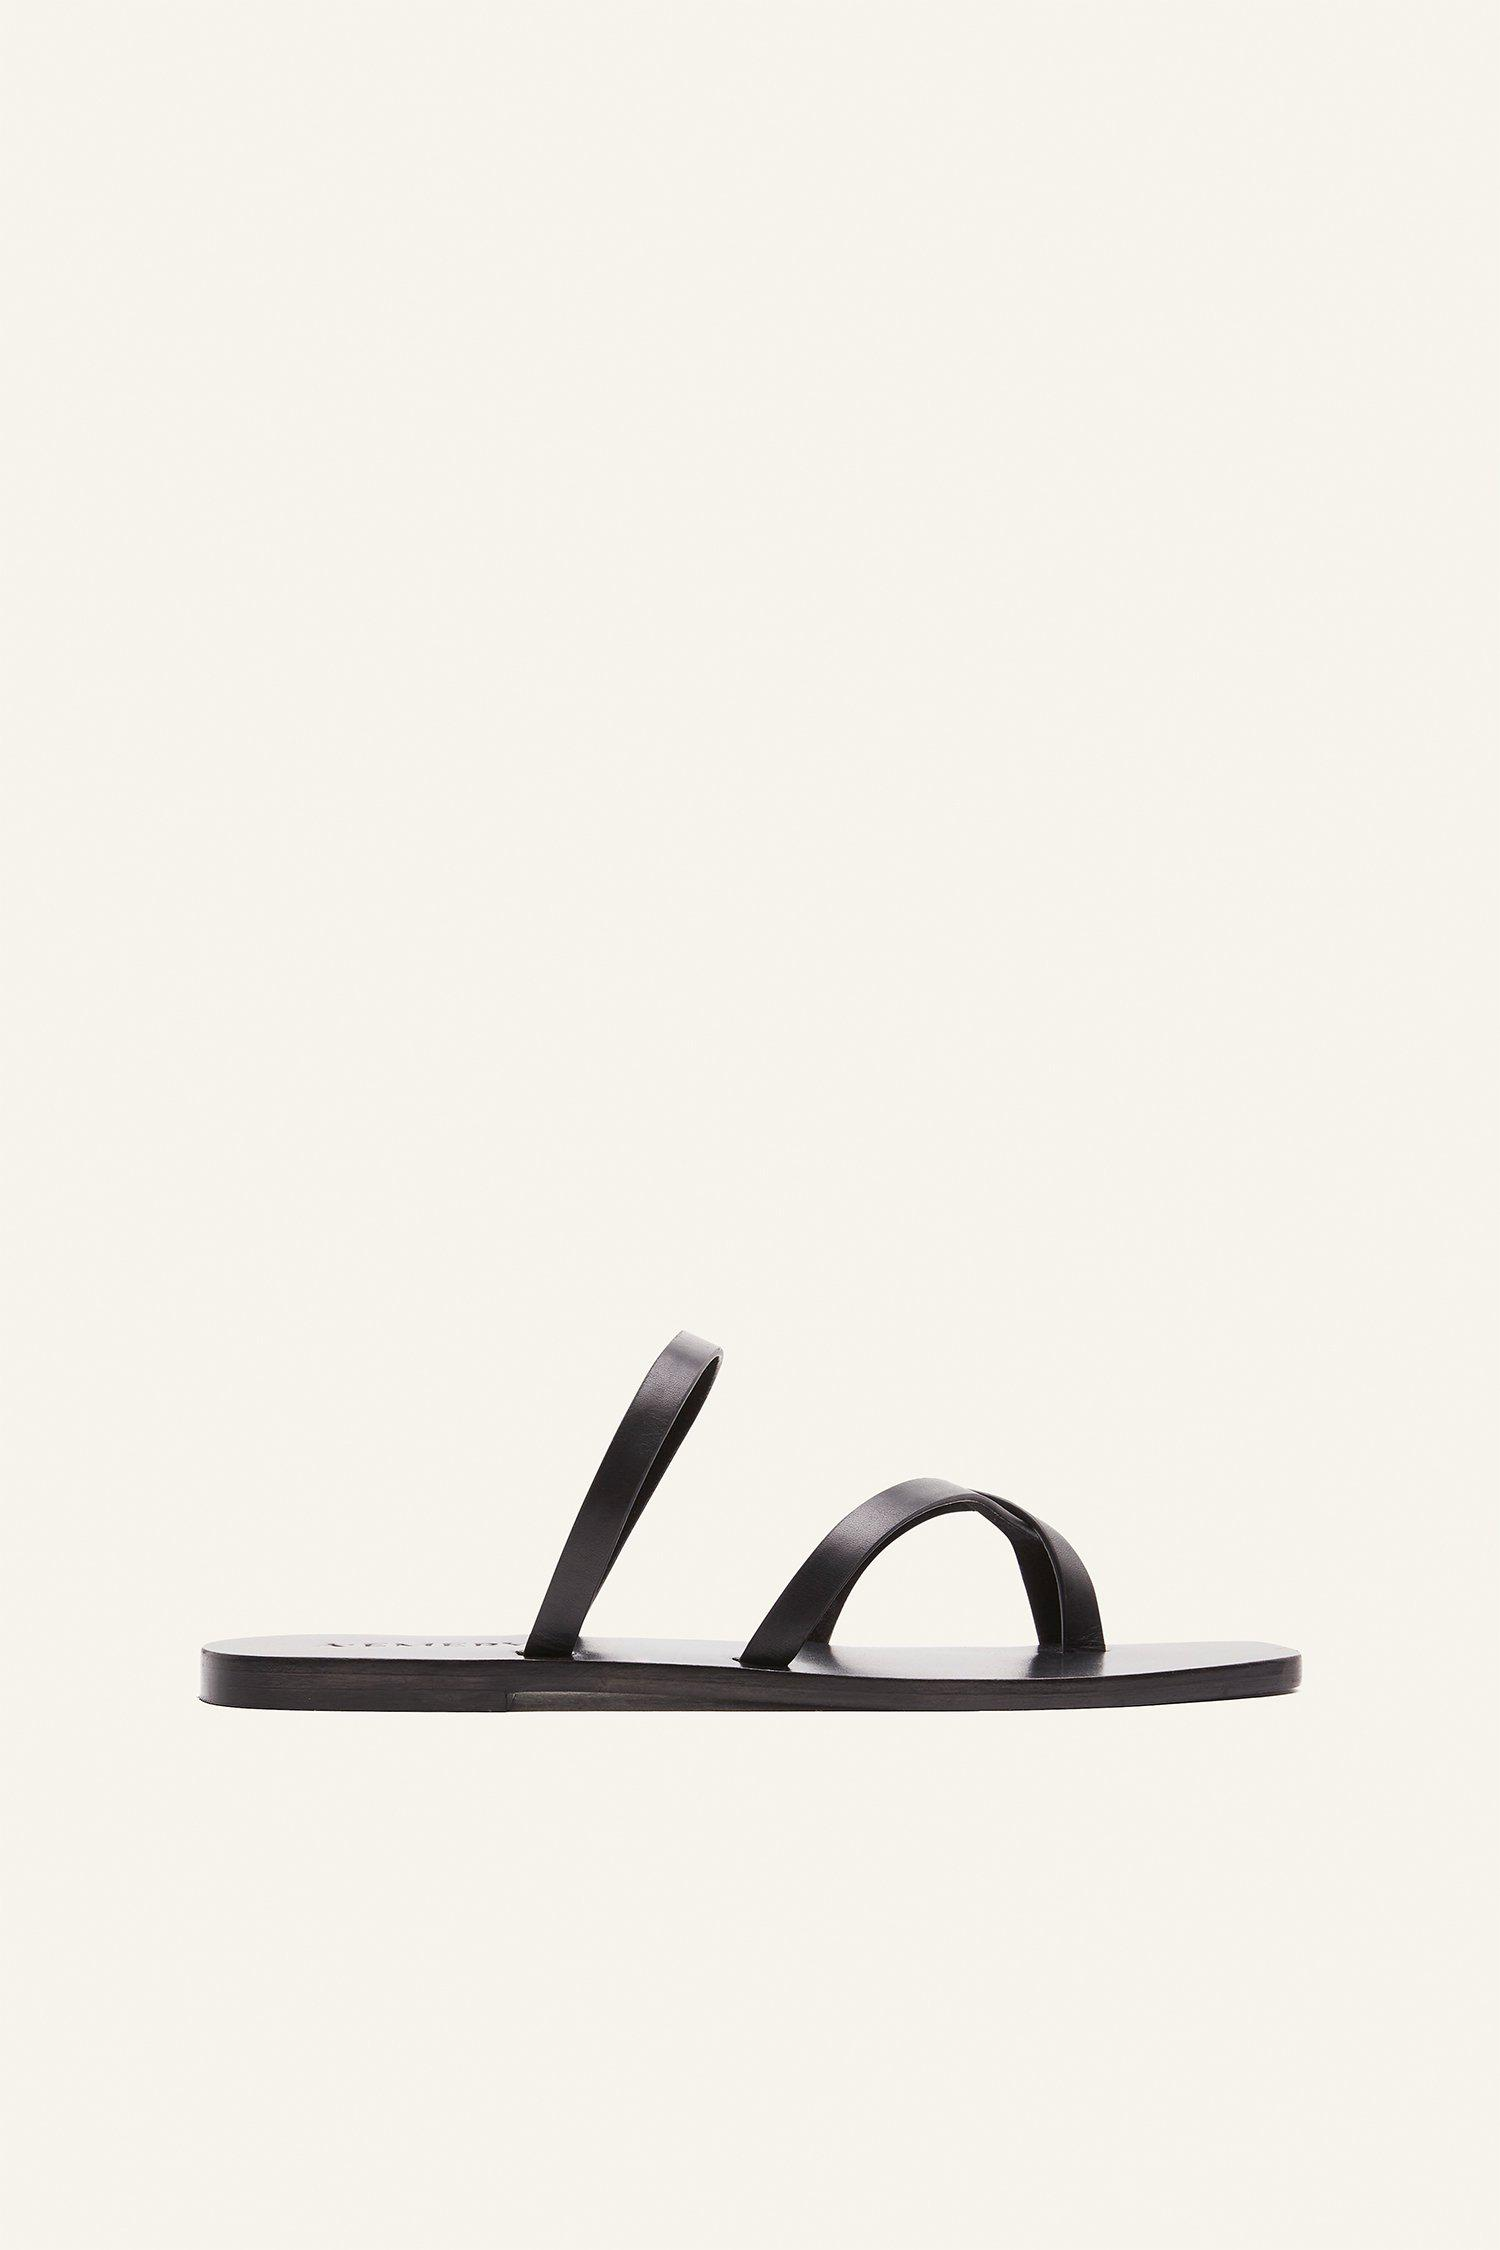 The Colby Sandal 2